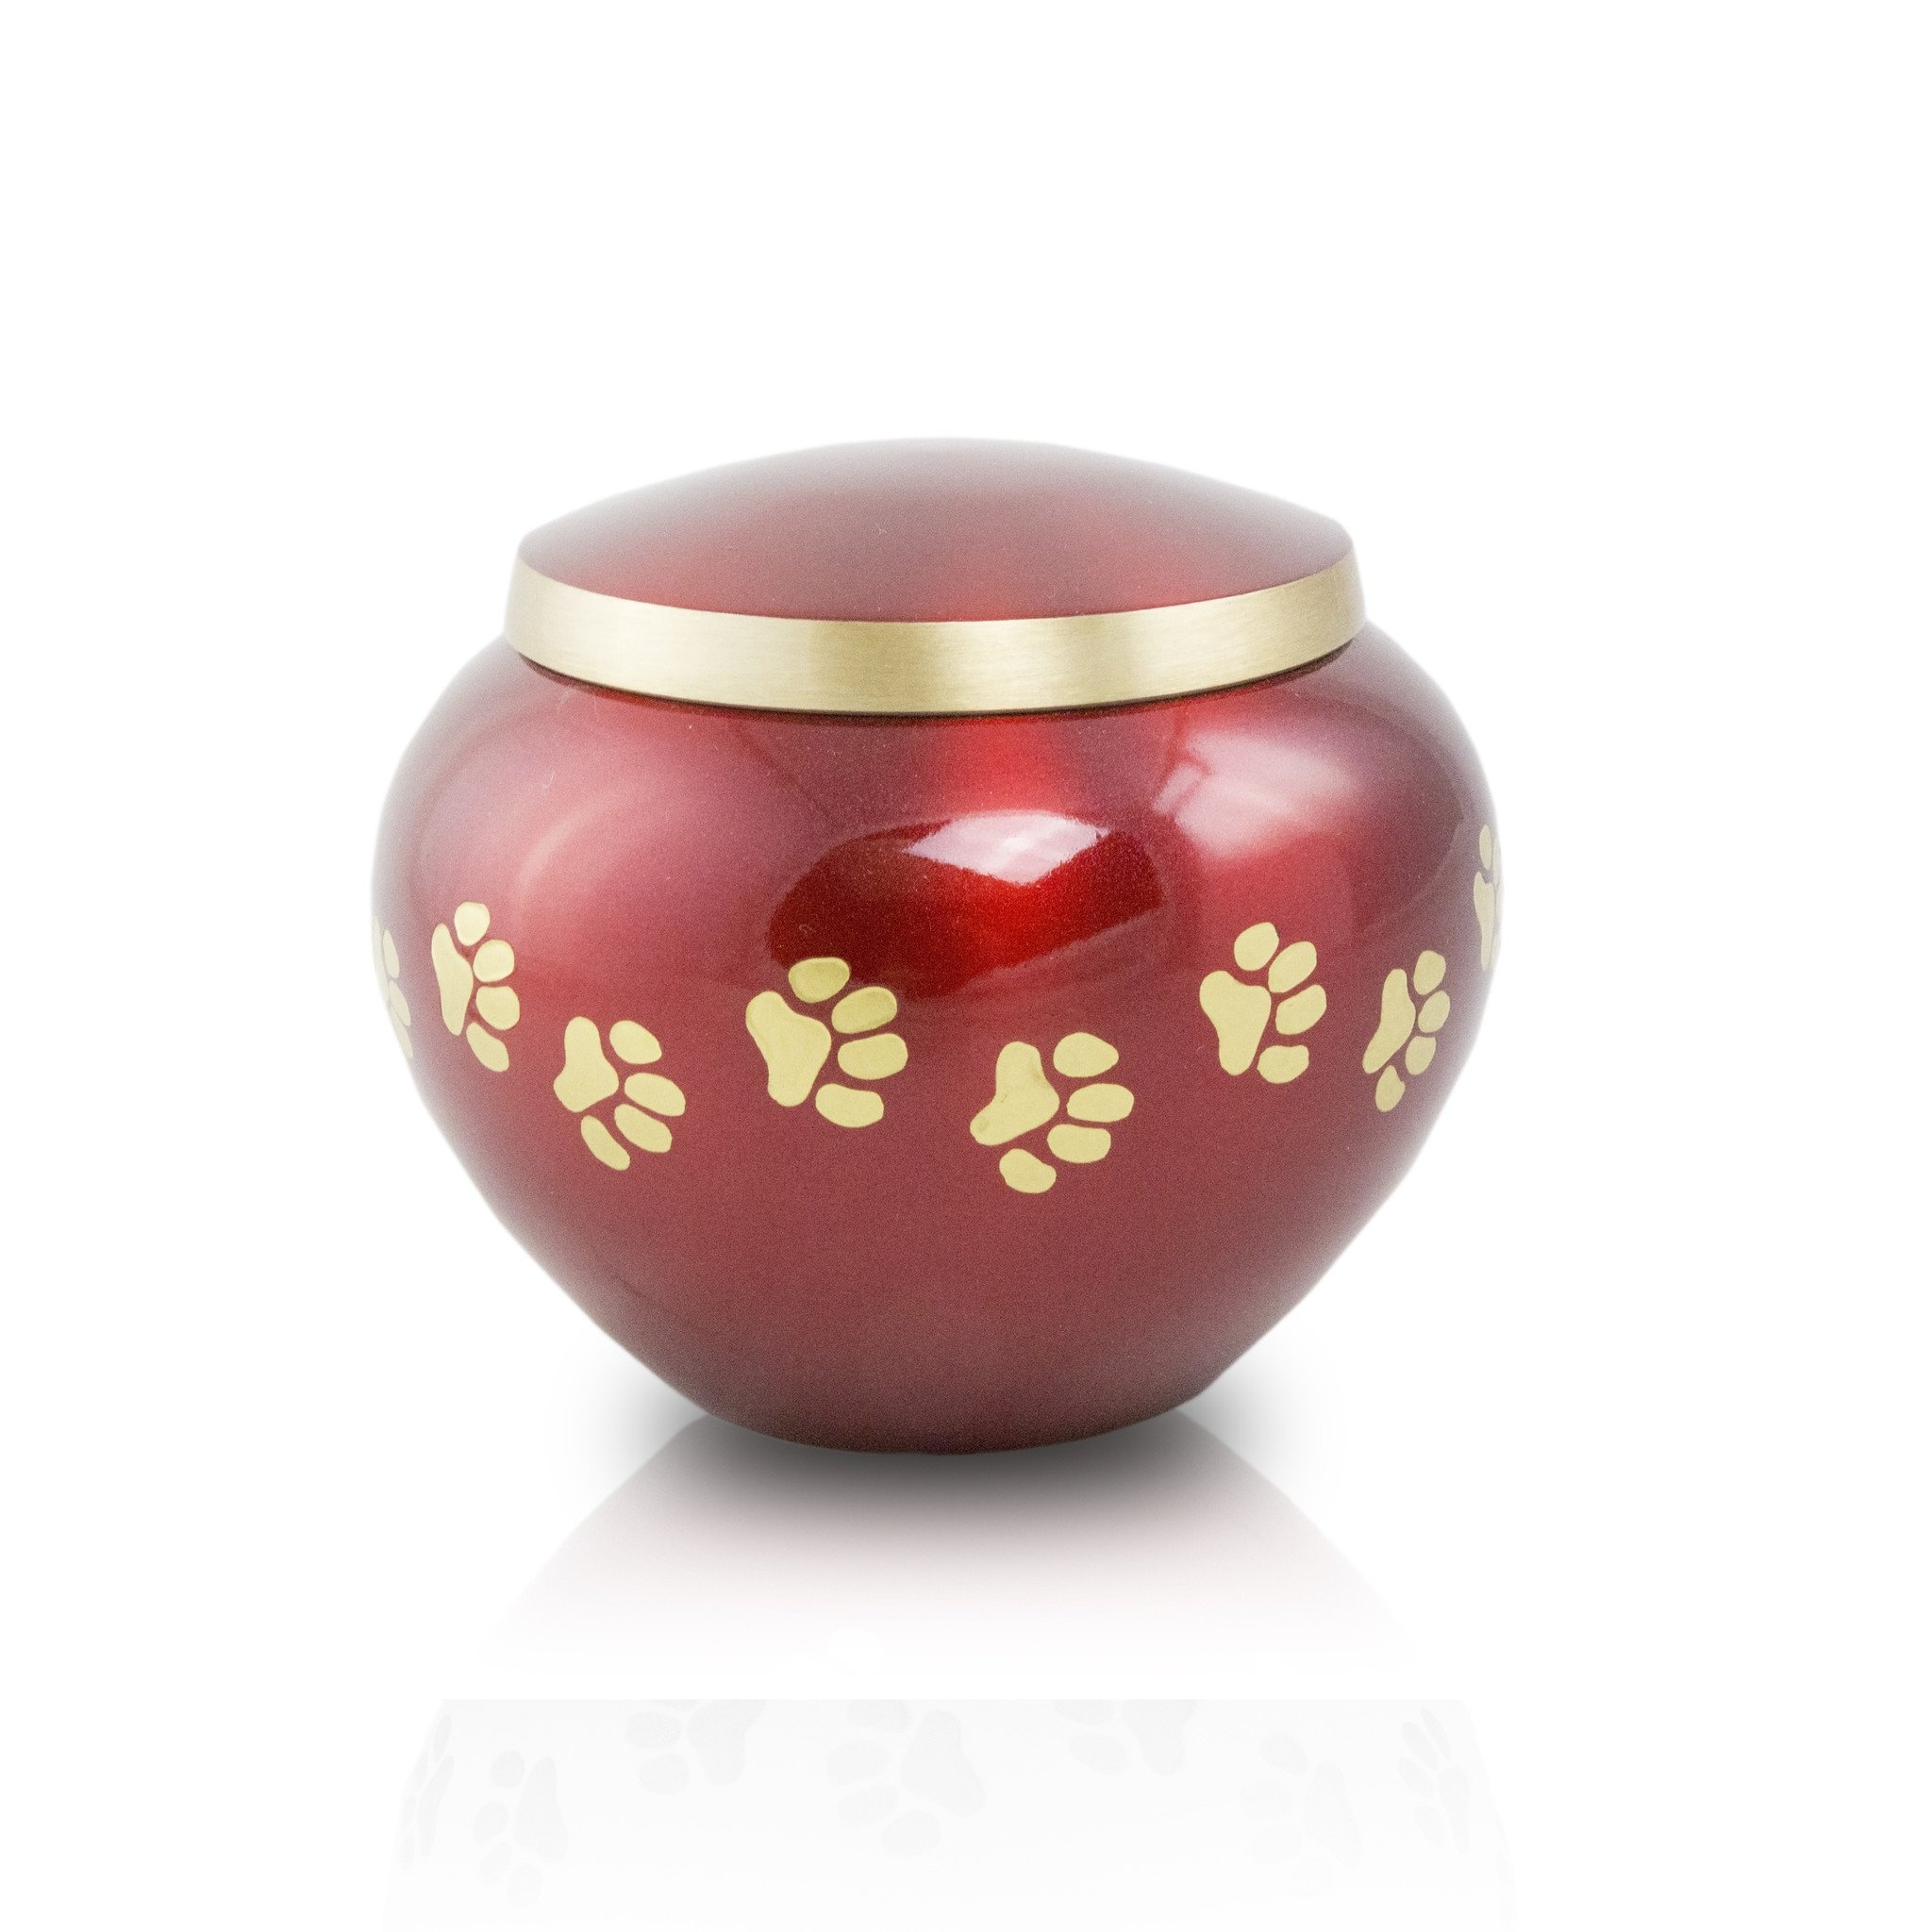 Paw Prints Bronze Dog, Cat Animal Memorial Urn - Extra Small - Holds Up To 25 Cubic Inches of Ashes - Crimson Red Pet Cremation Urn for Ashes - Engraving Sold Separately